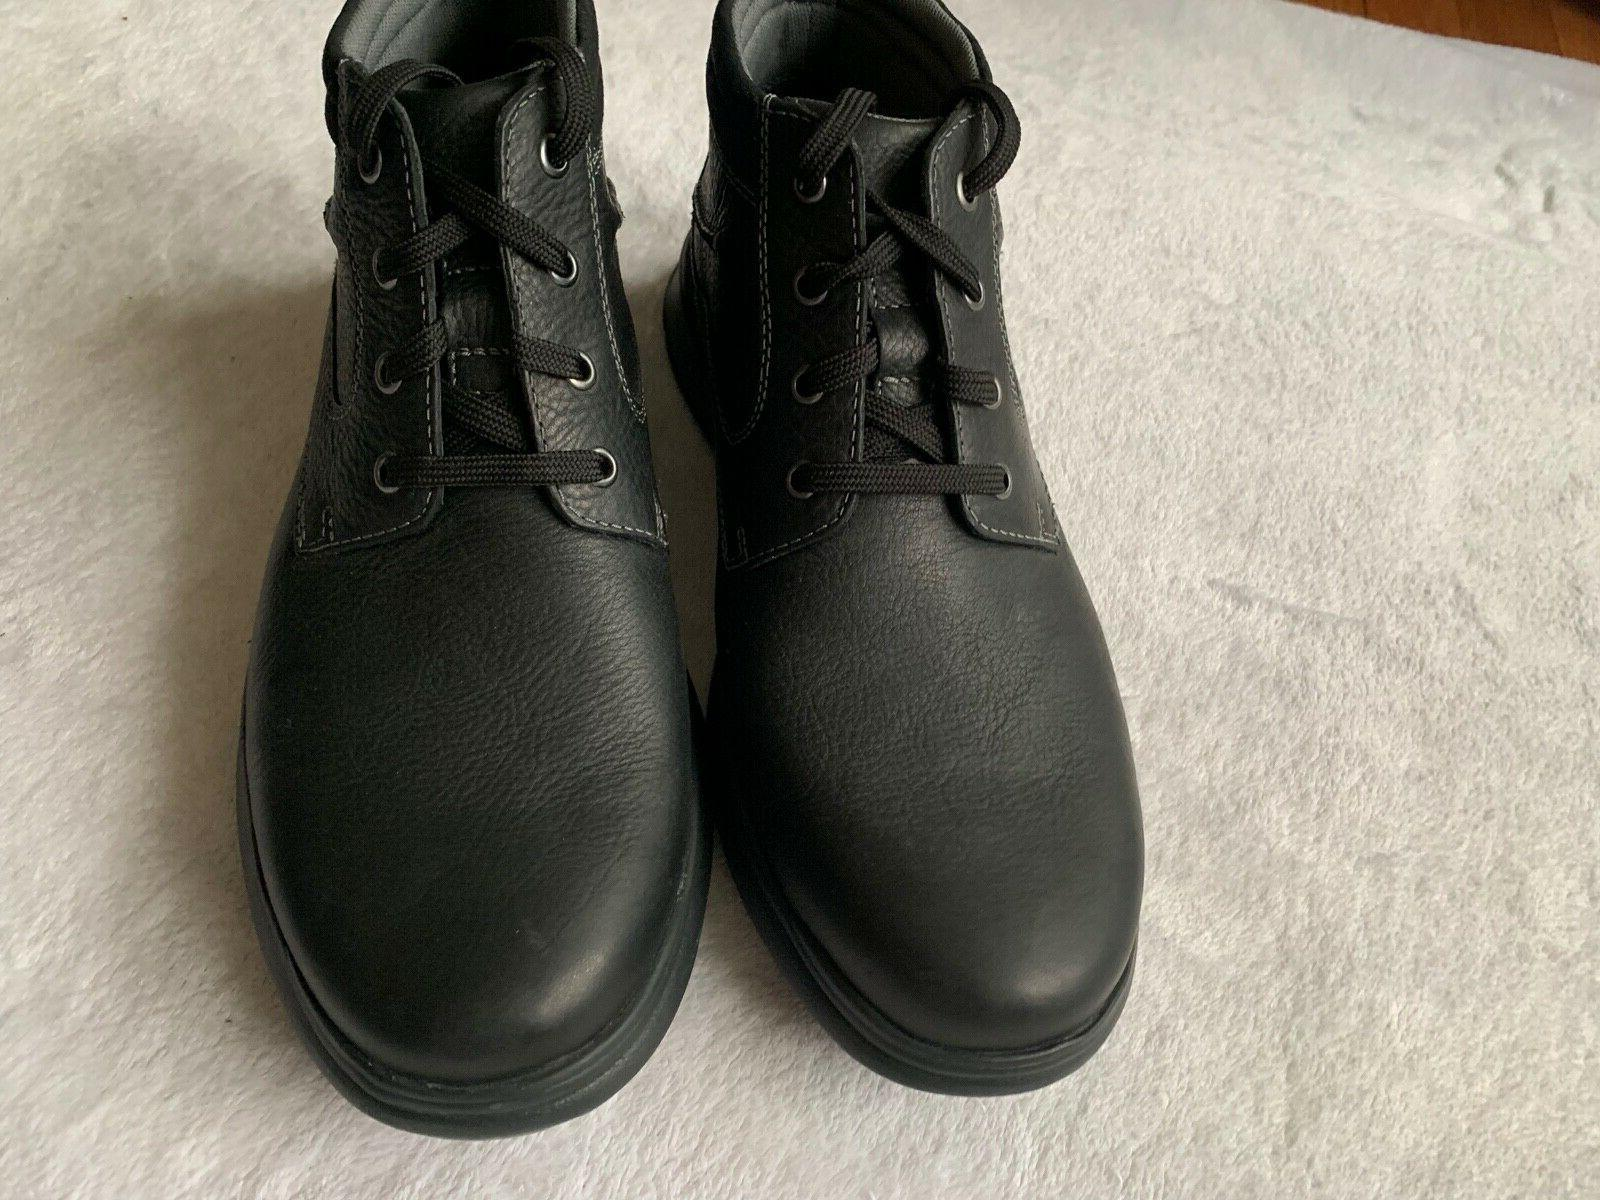 NWT CLARKS COTRELL MEN'S BLACK CASUAL LIGHTWEIGHT BOOTS: